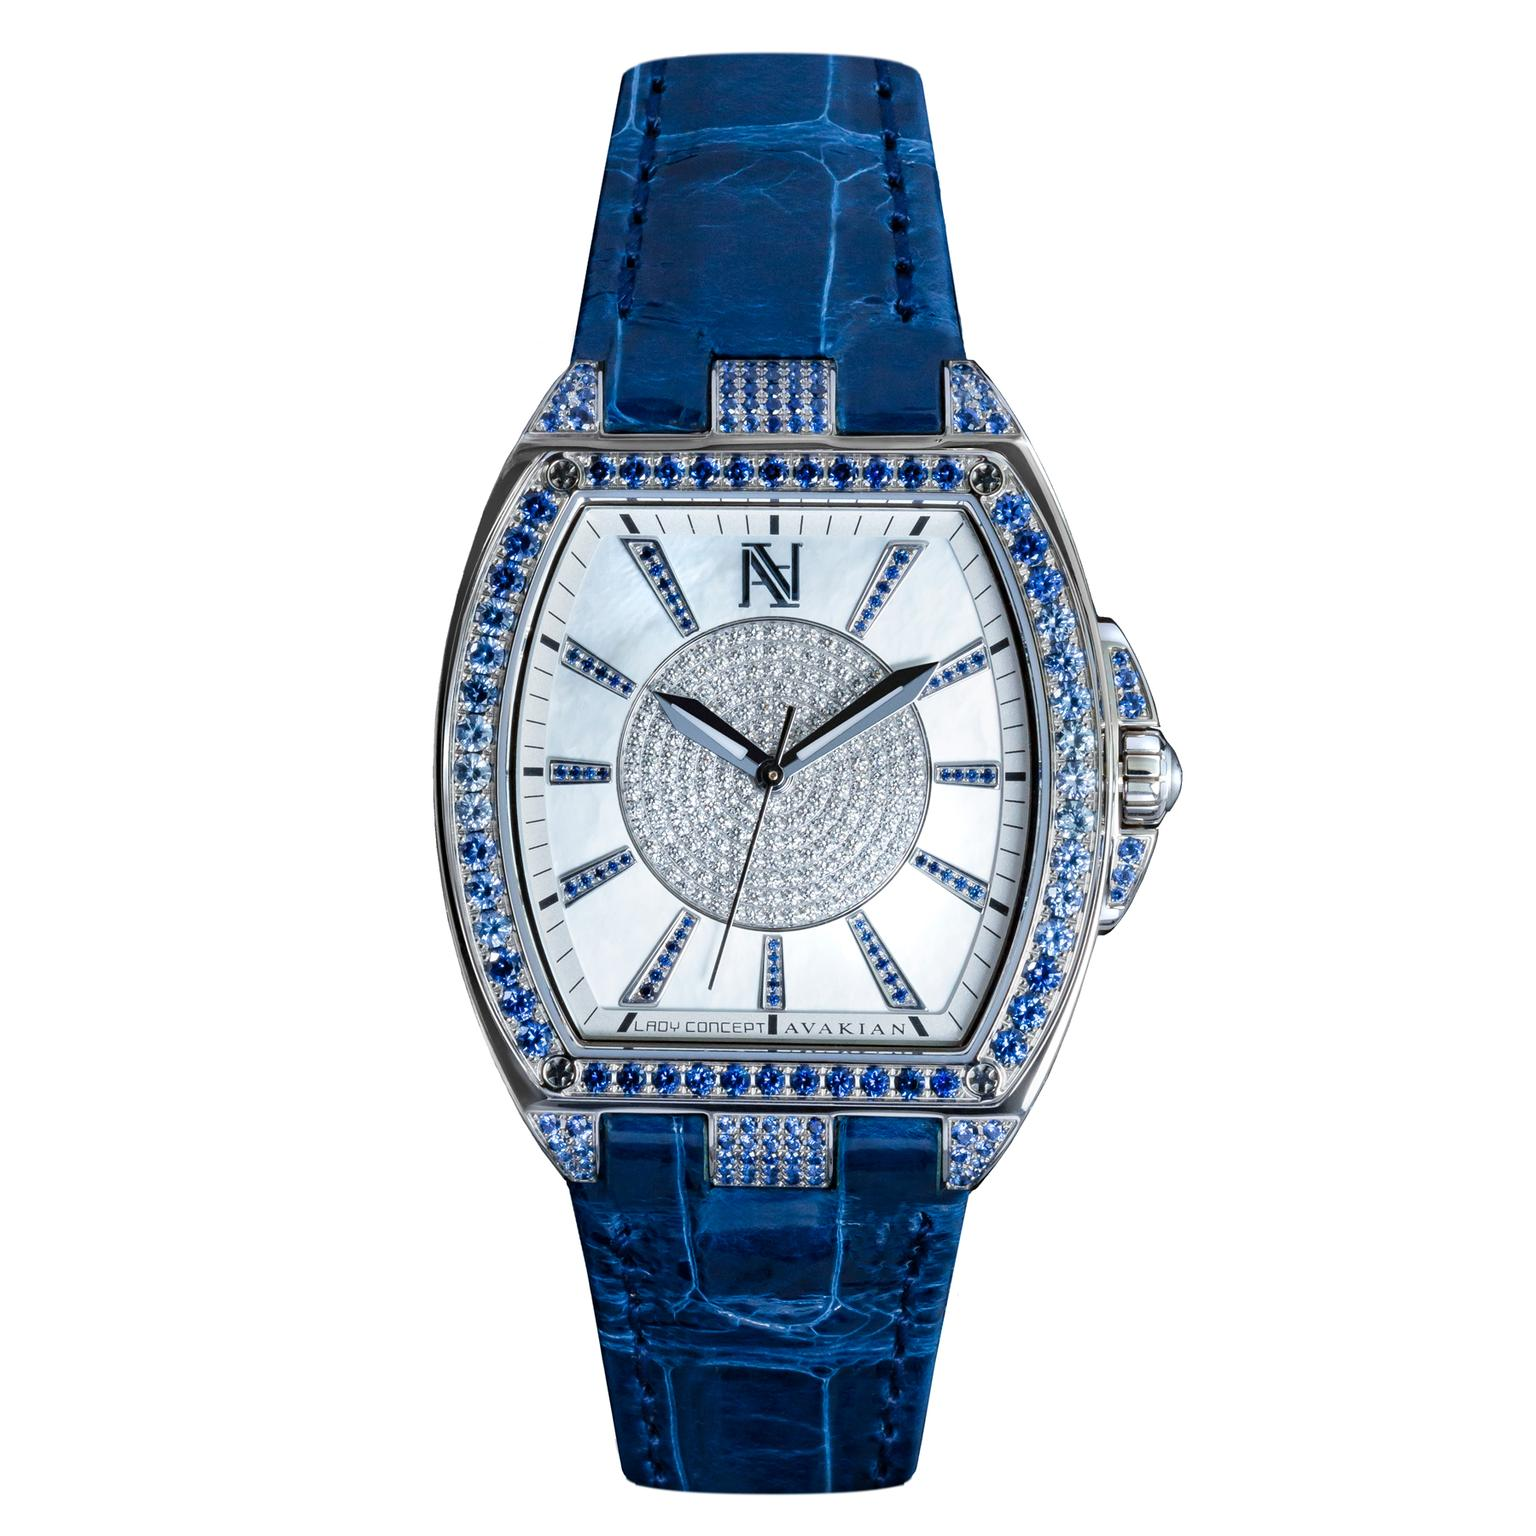 Avakian Lady Concept Blue Gradient watch